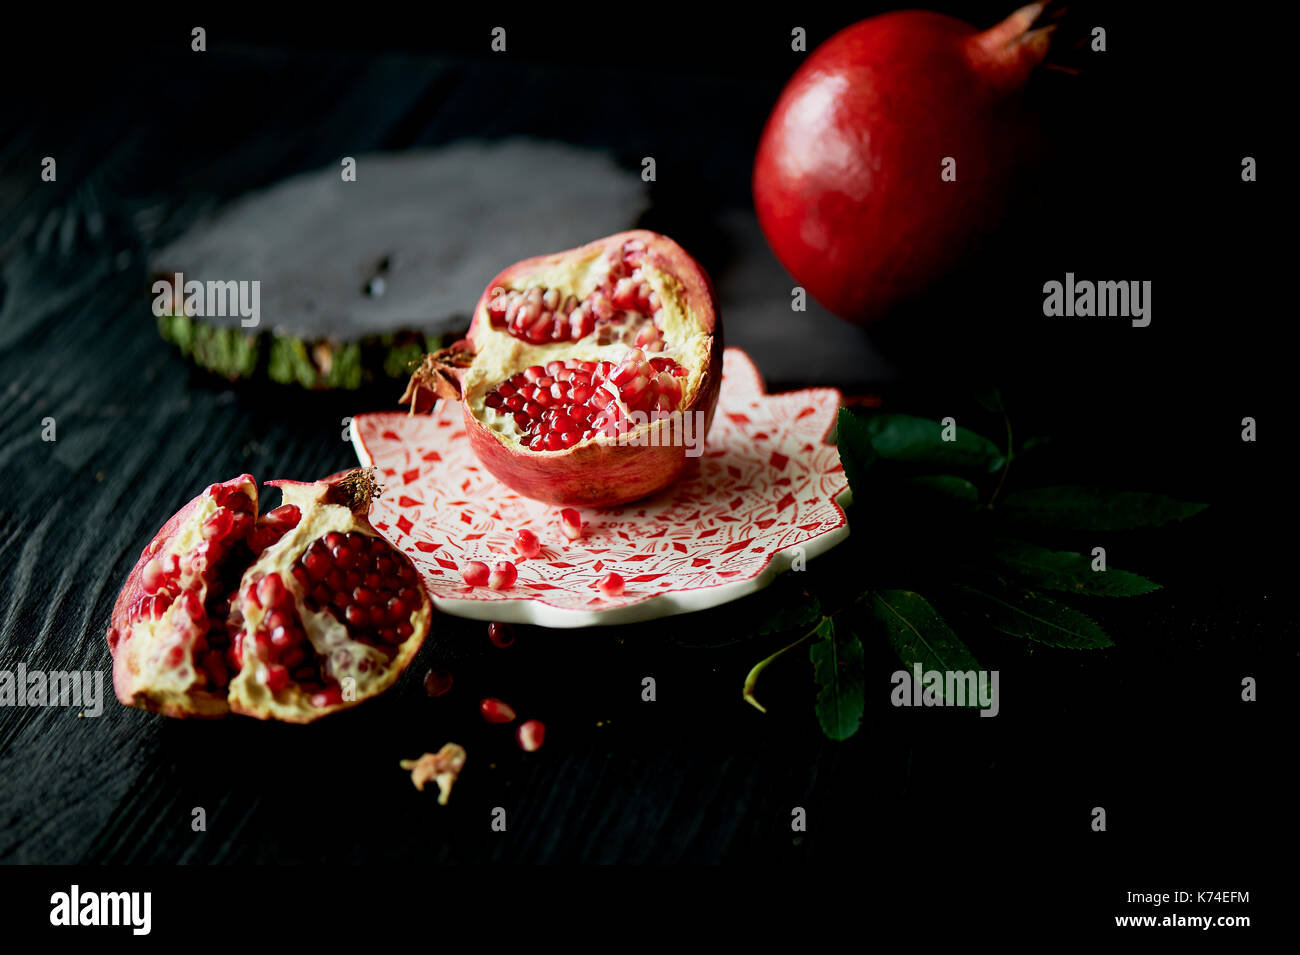 Useful antioxidant pomegranate, lies with the dark countertops. One in broken with juicy flesh.Framed by green leaves. Healthy eating during the vitamin deficiency - Stock Image